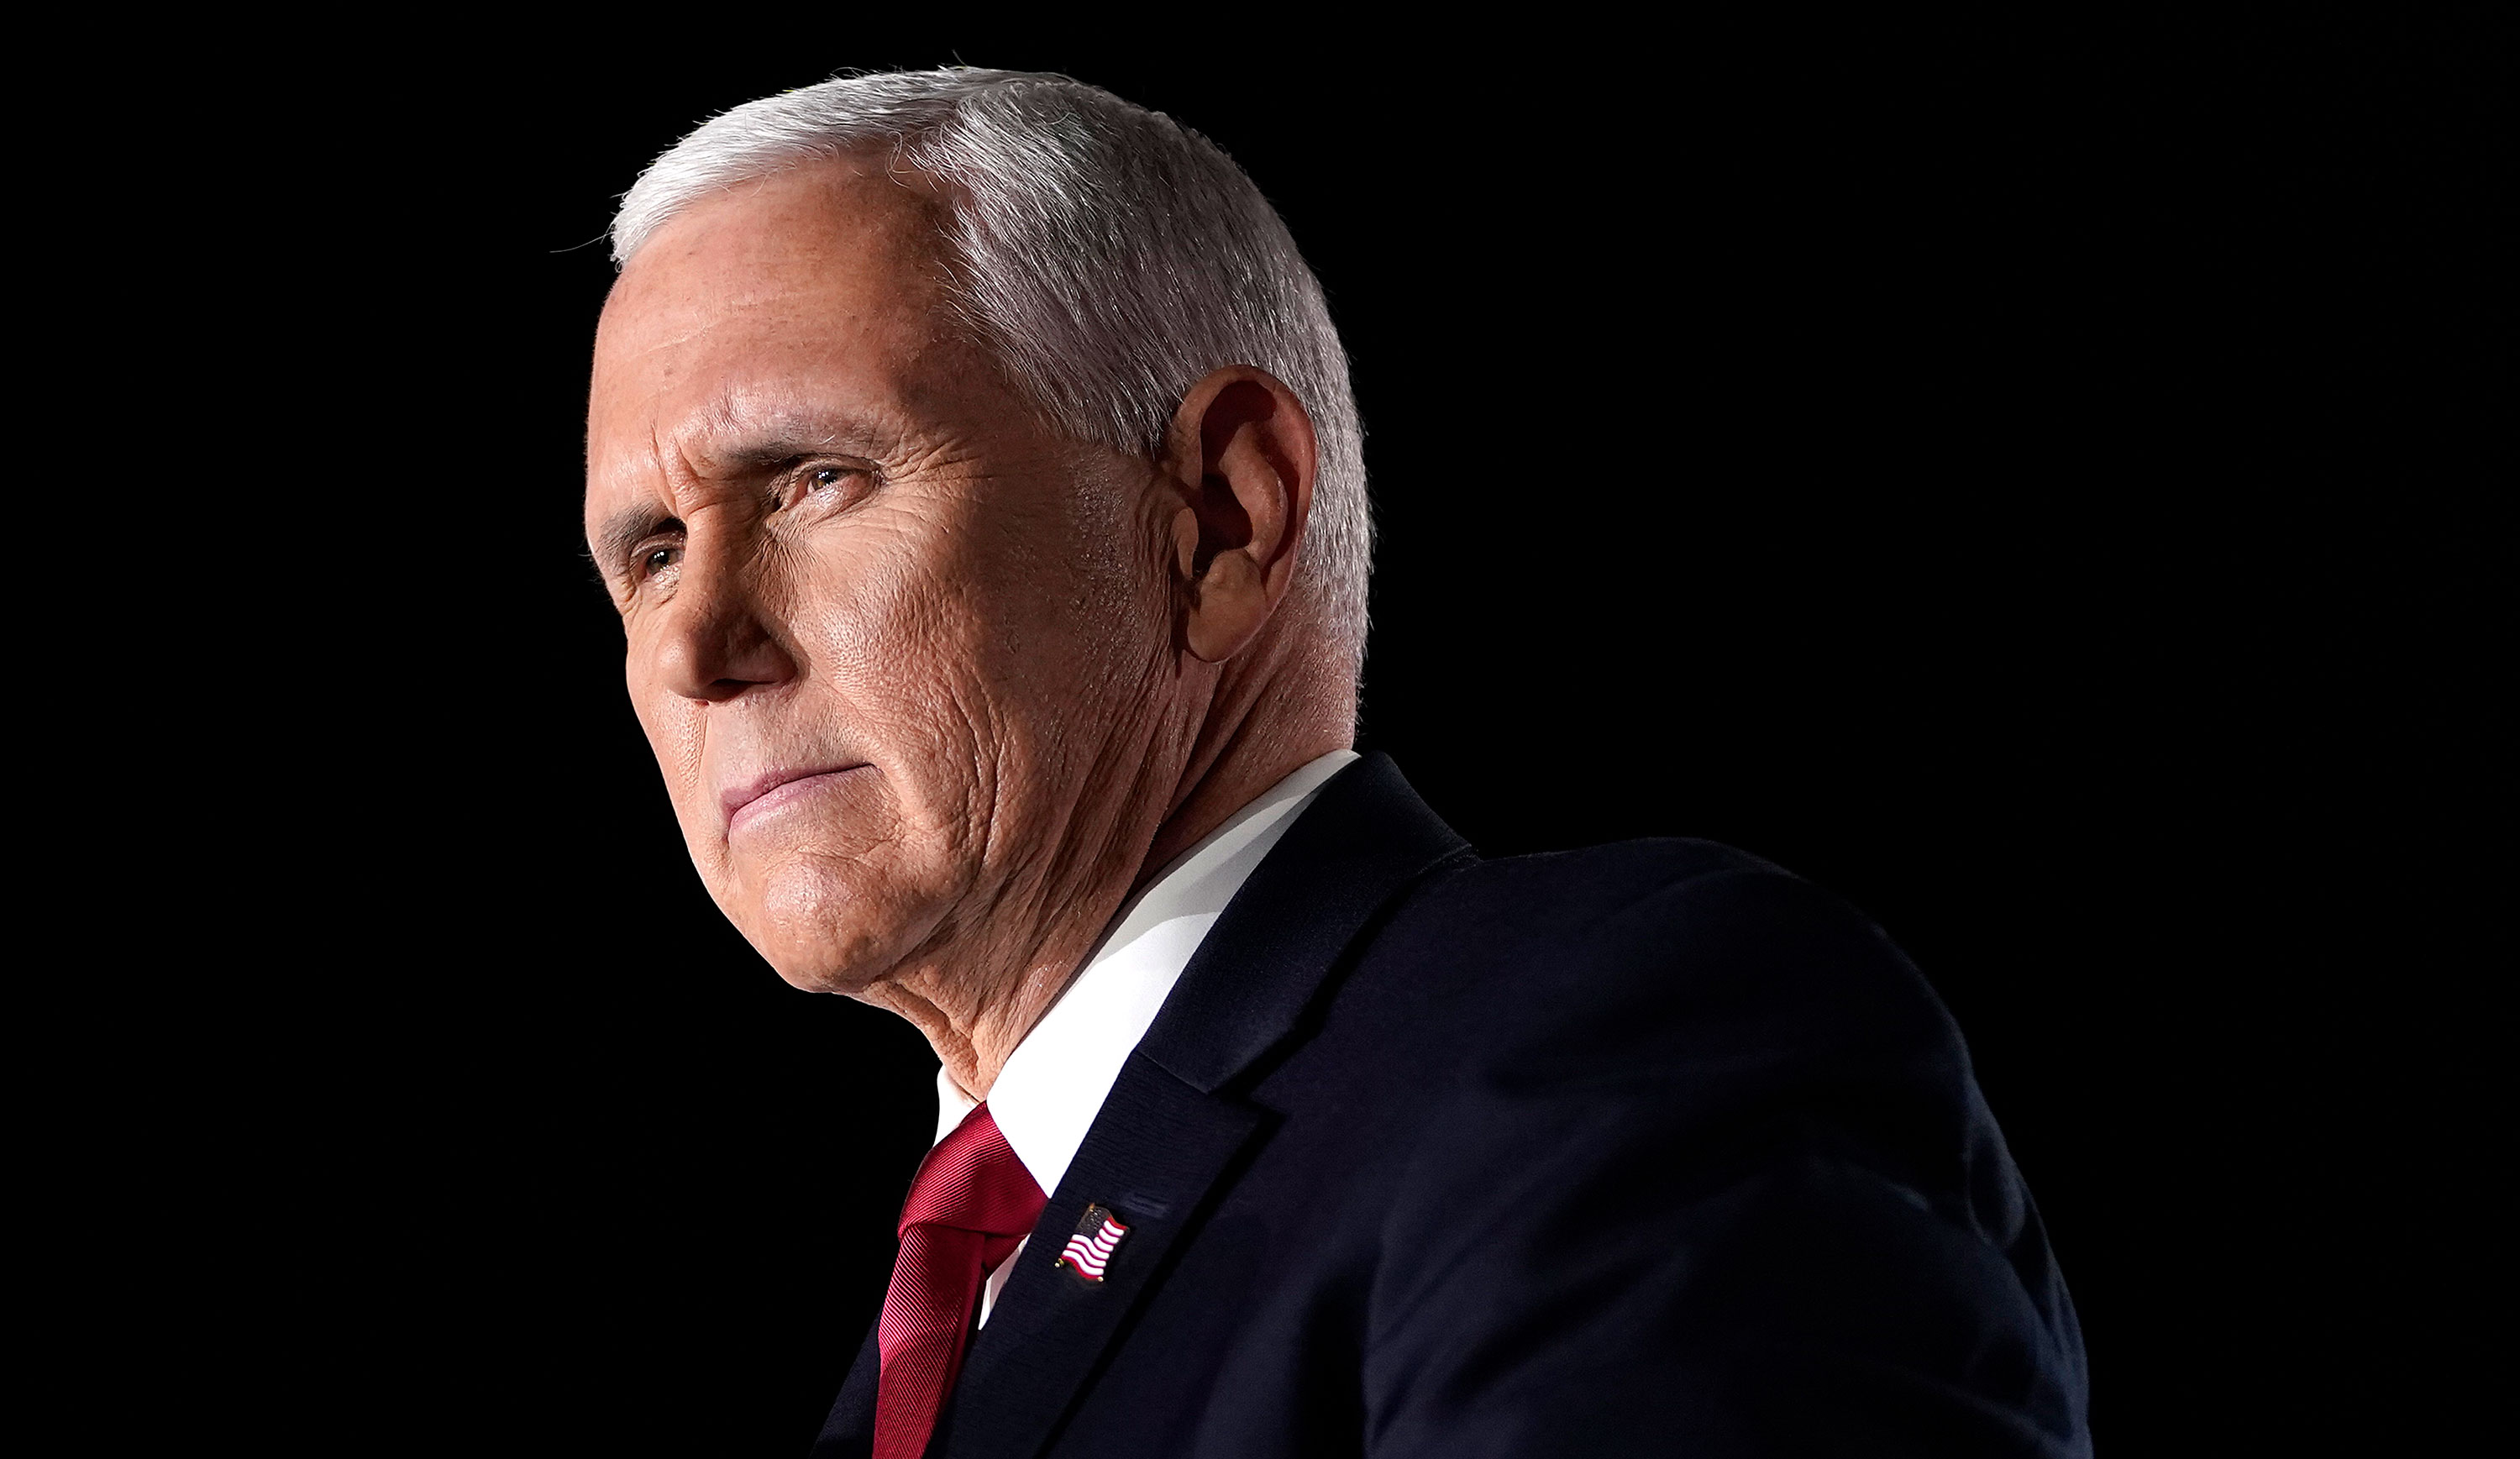 Mike Pence attends the Republican National Convention on August 26 in Baltimore, Maryland.